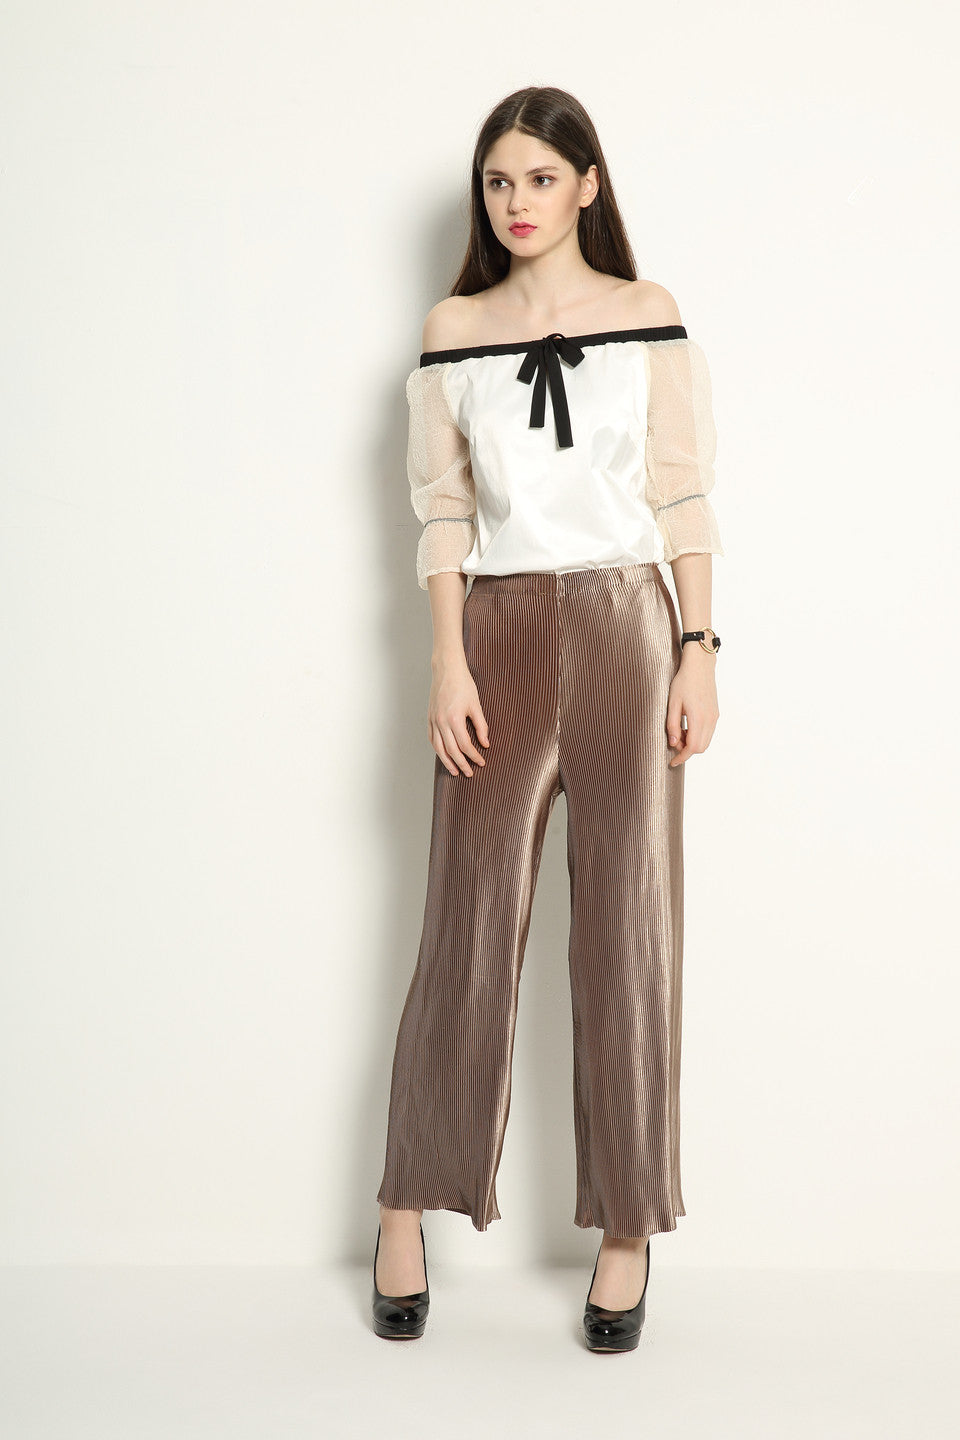 Metallic Pleat Trousers - GlanceZ   - 1